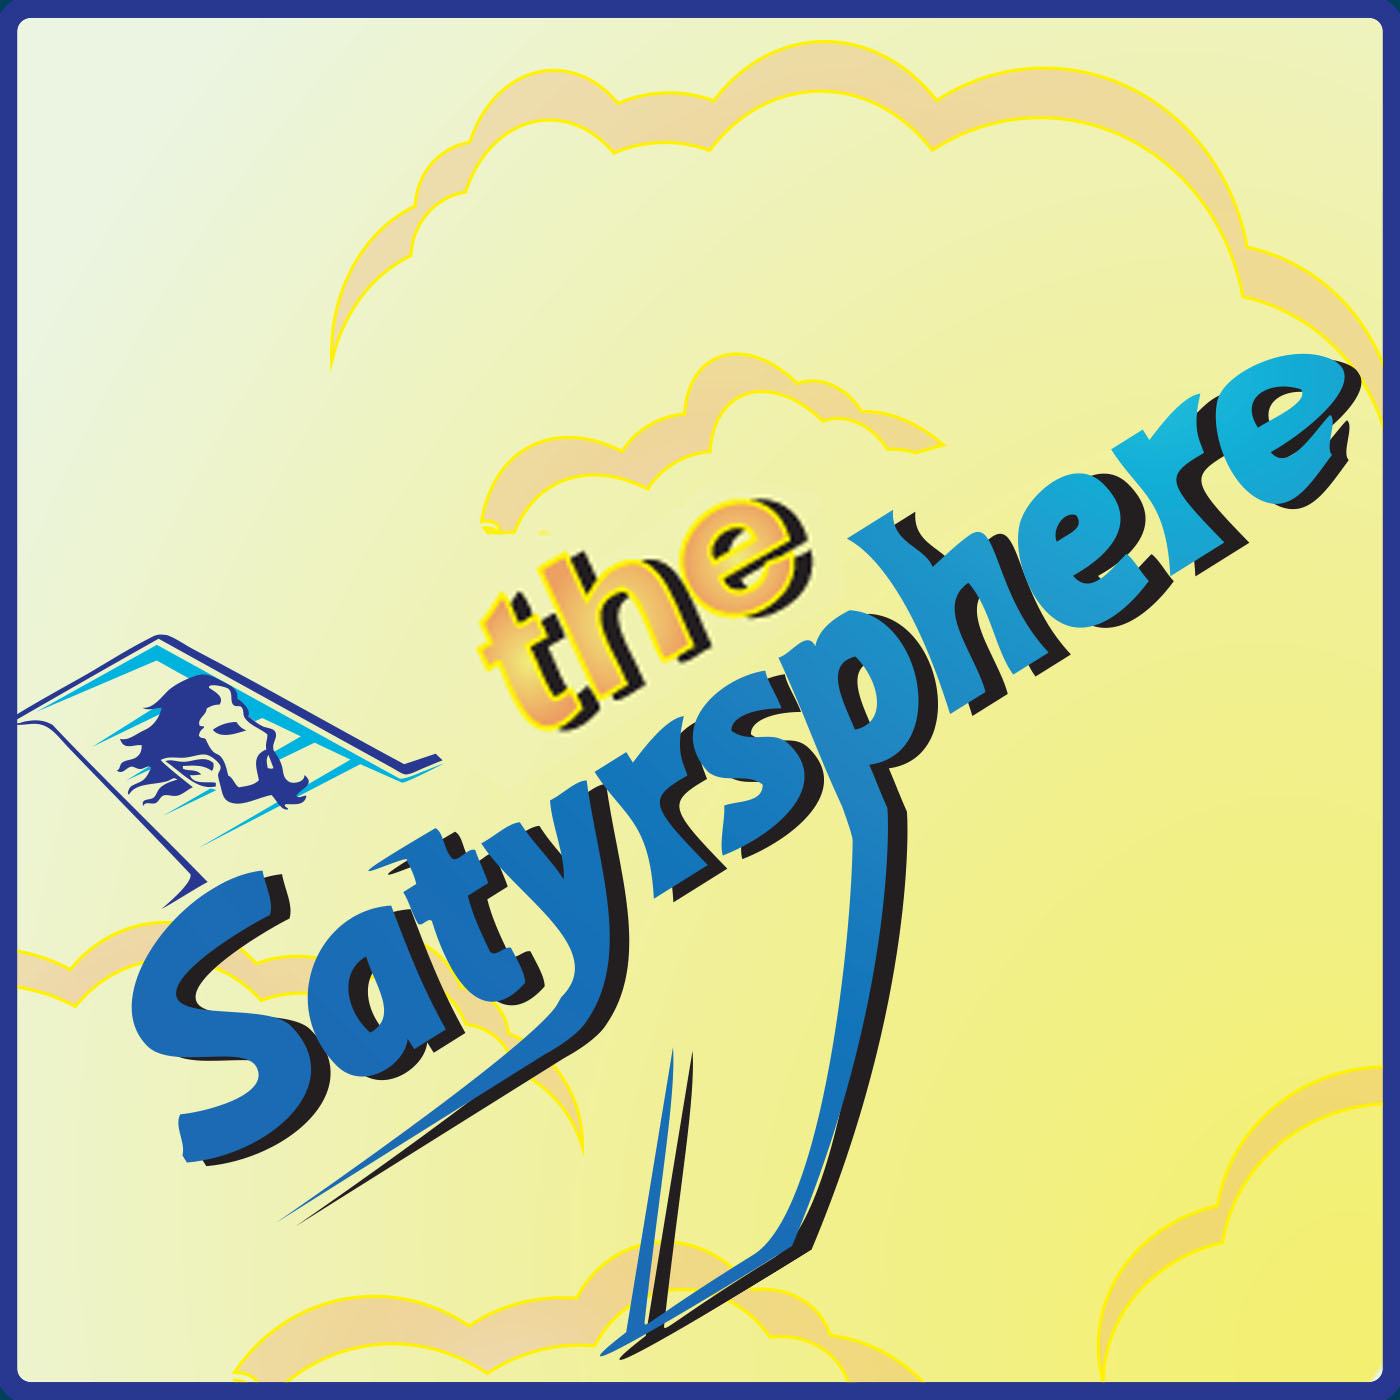 #222 - The Satyrsphere Seasonal Sampler 2016